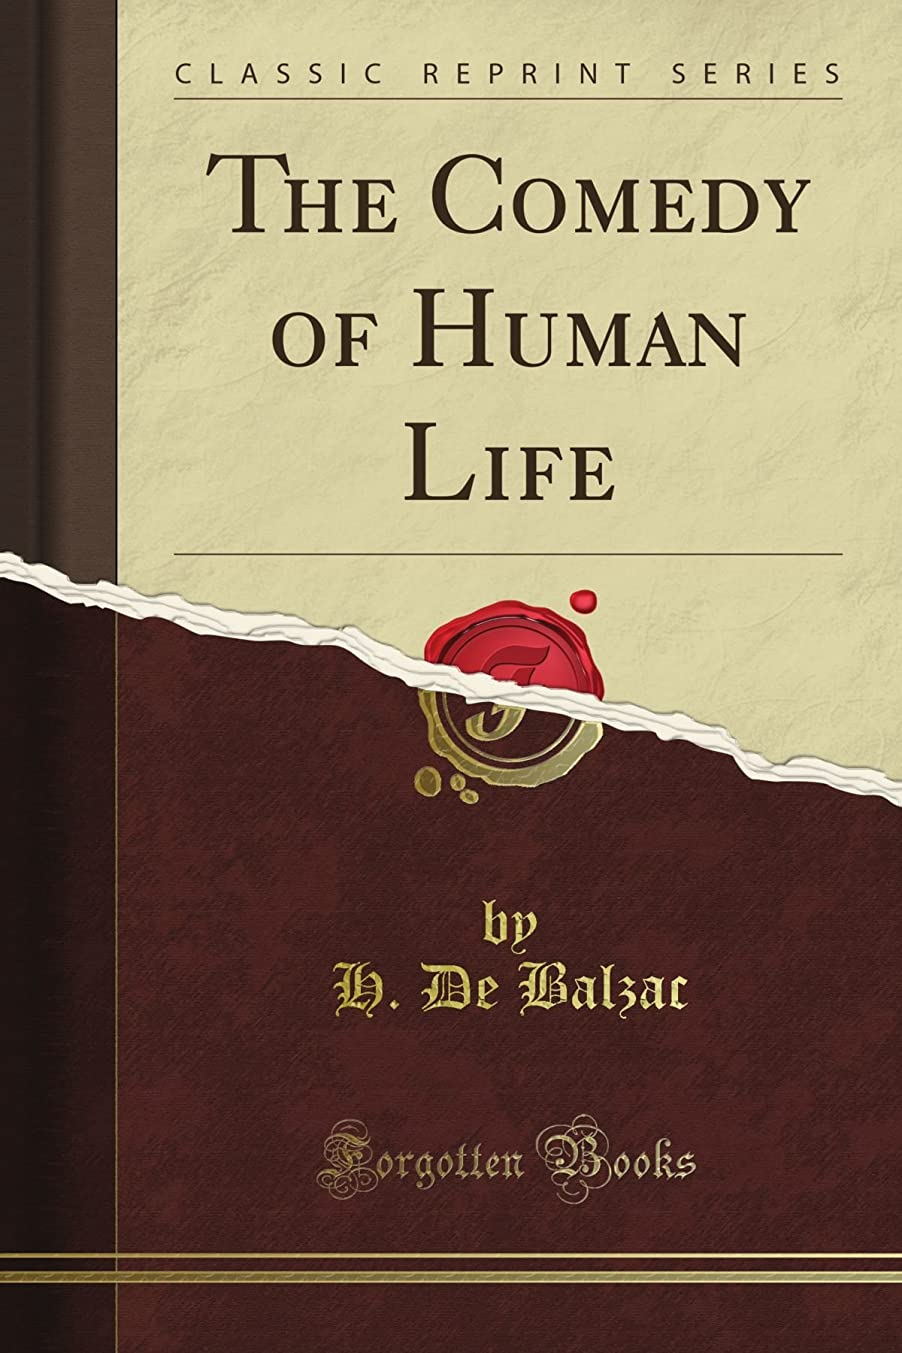 強制エージェントメタルラインThe Comedy of Human Life (Classic Reprint)